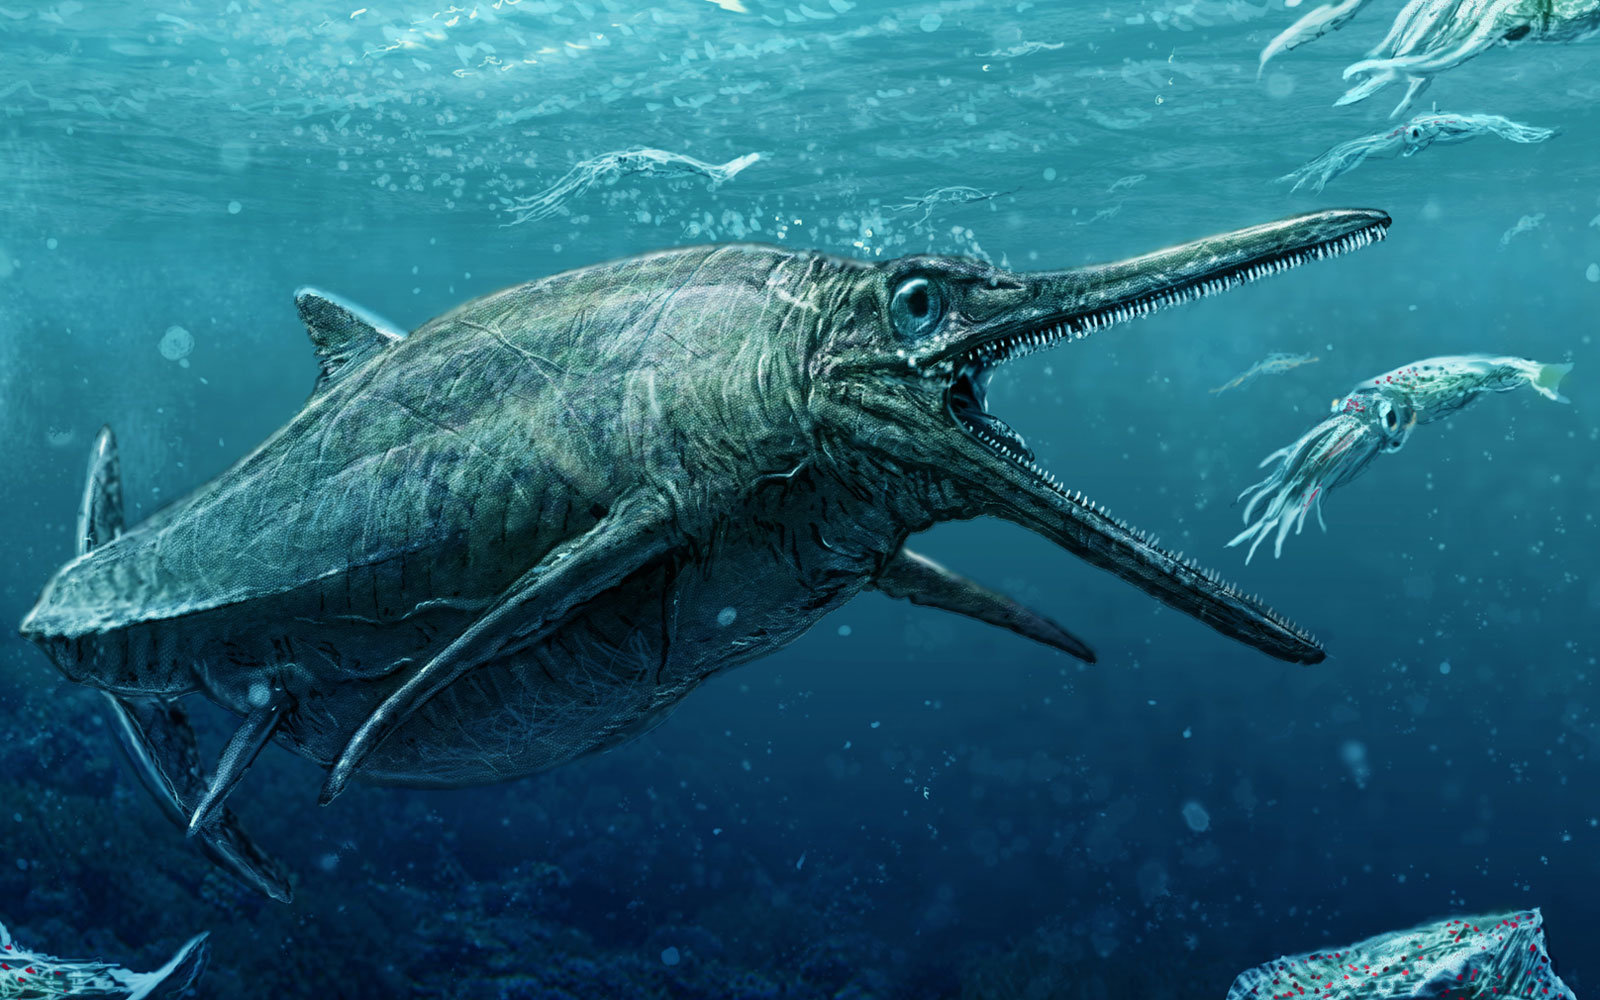 Loch Ness Monster Fossil